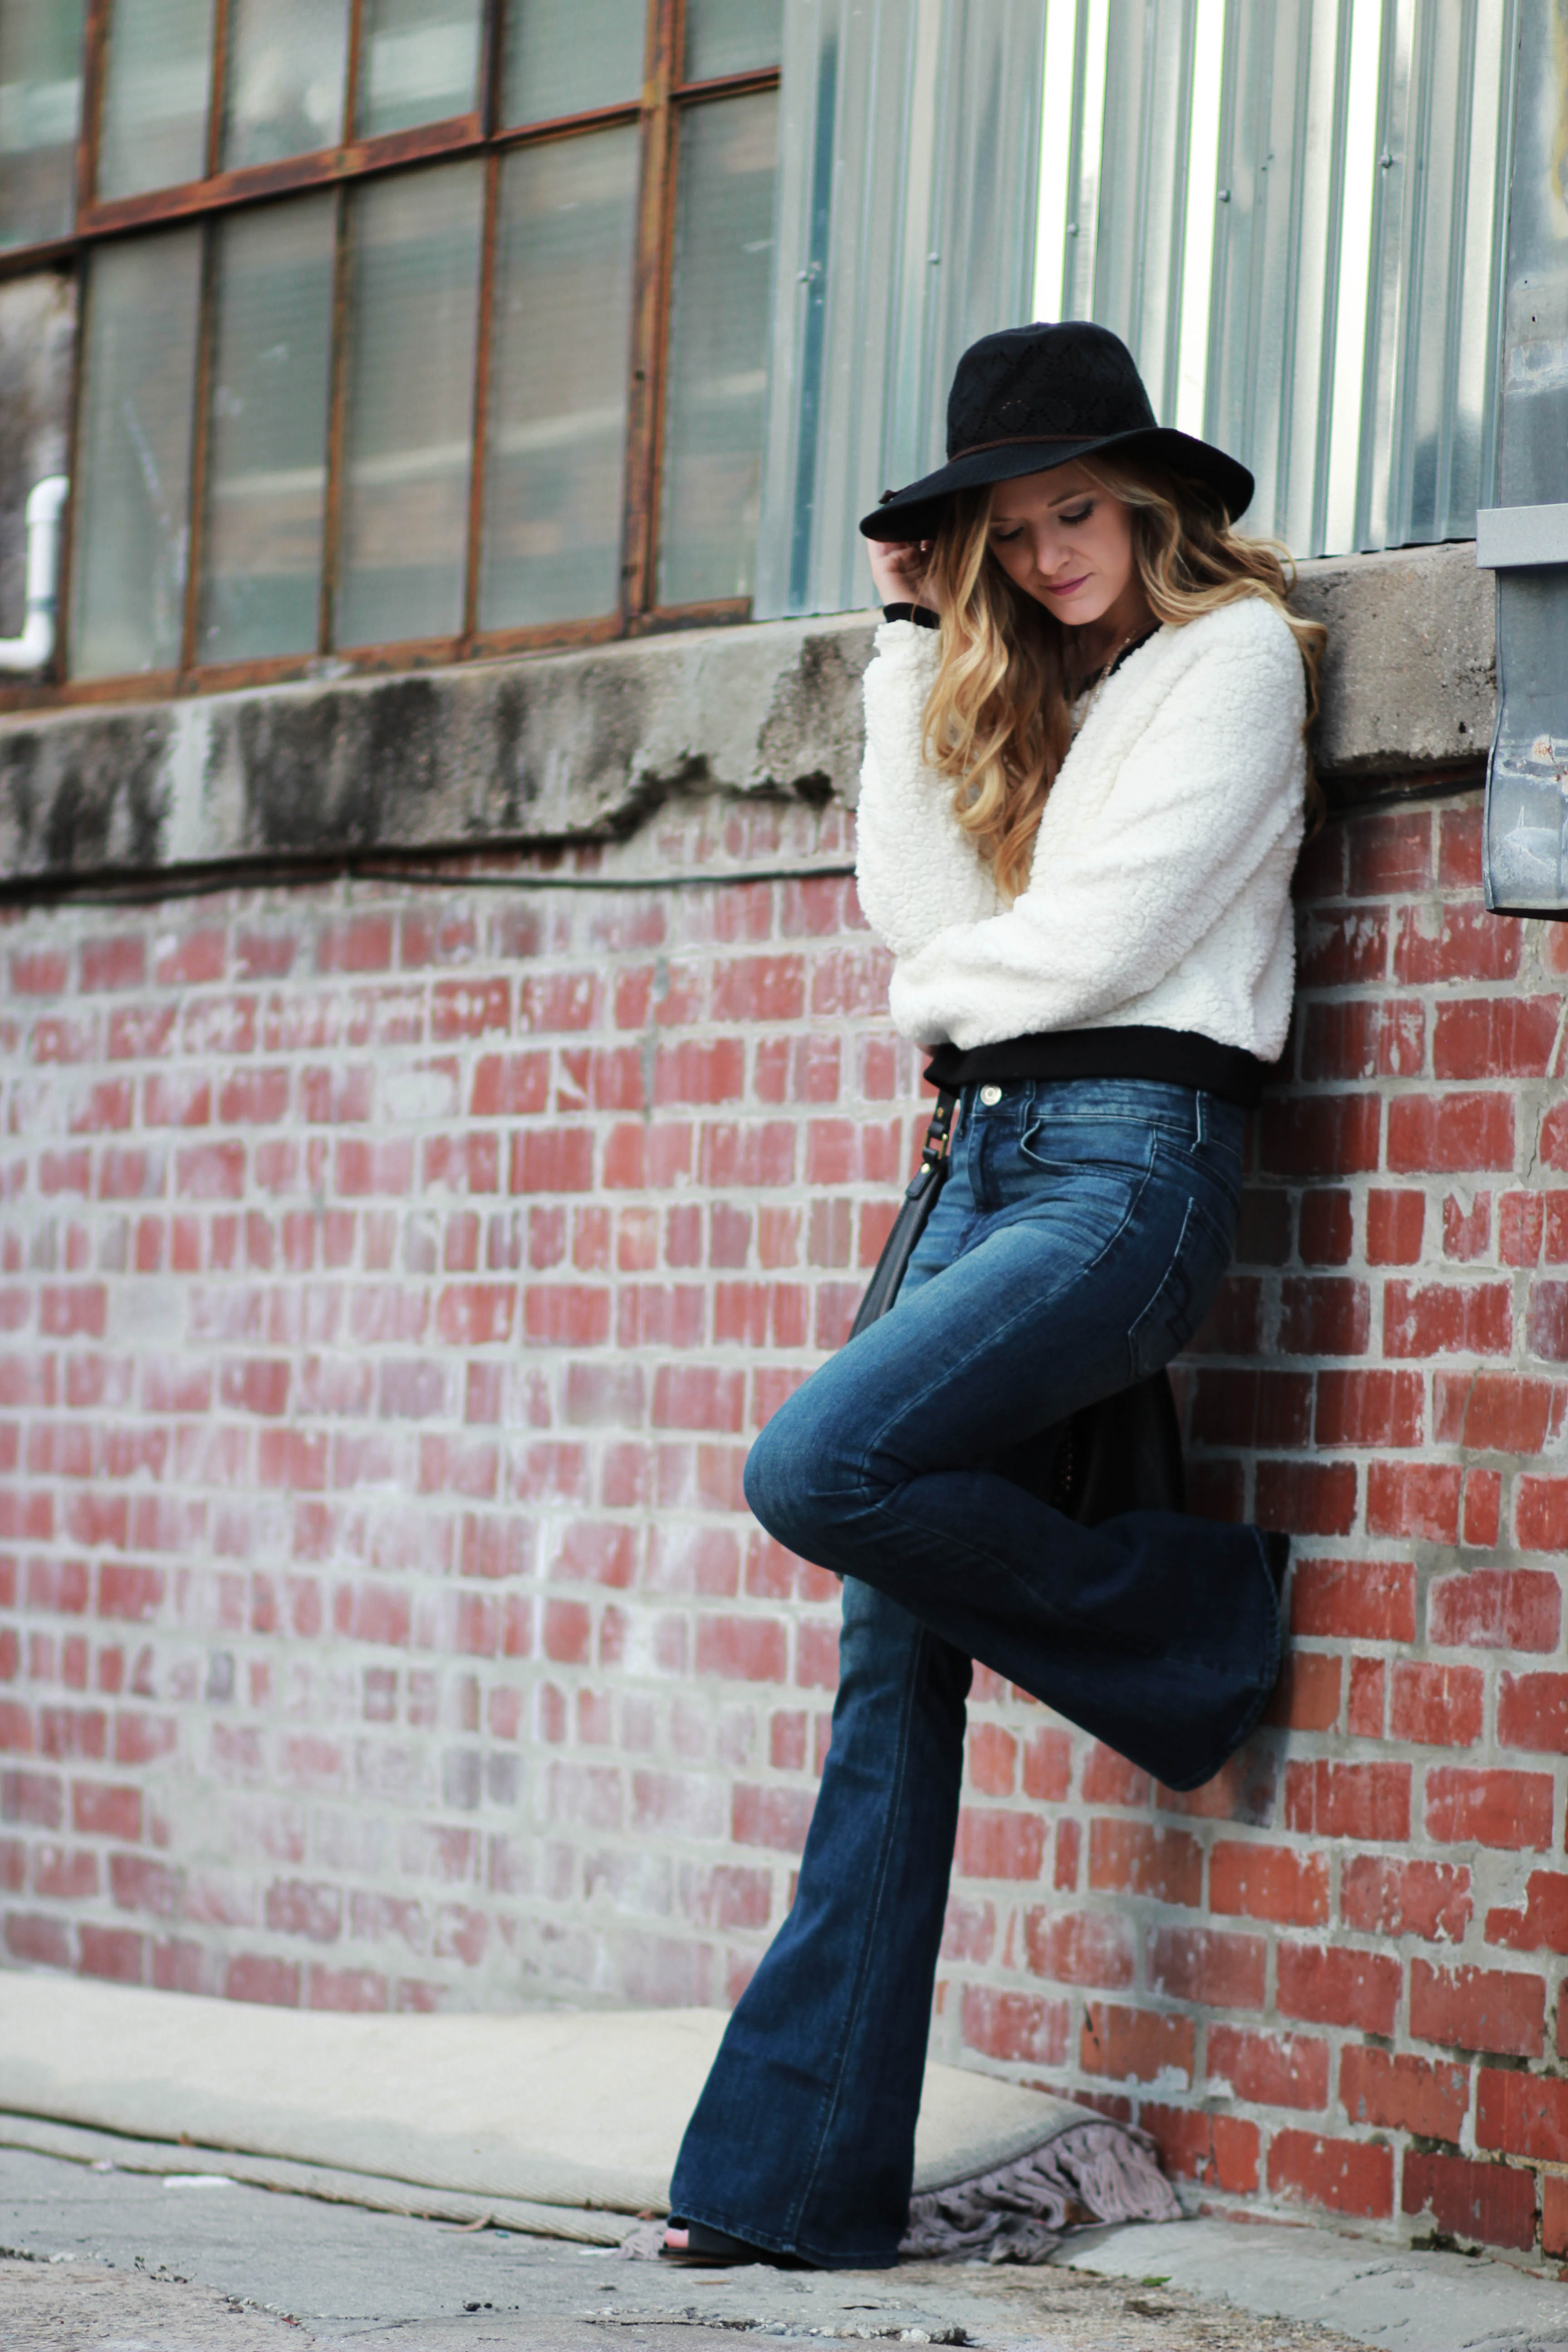 orlando, florida fashion blog styles aeropostale sweater, american eagle, flared jeans, free people hat, and michael kors bag for a casual winter outfit